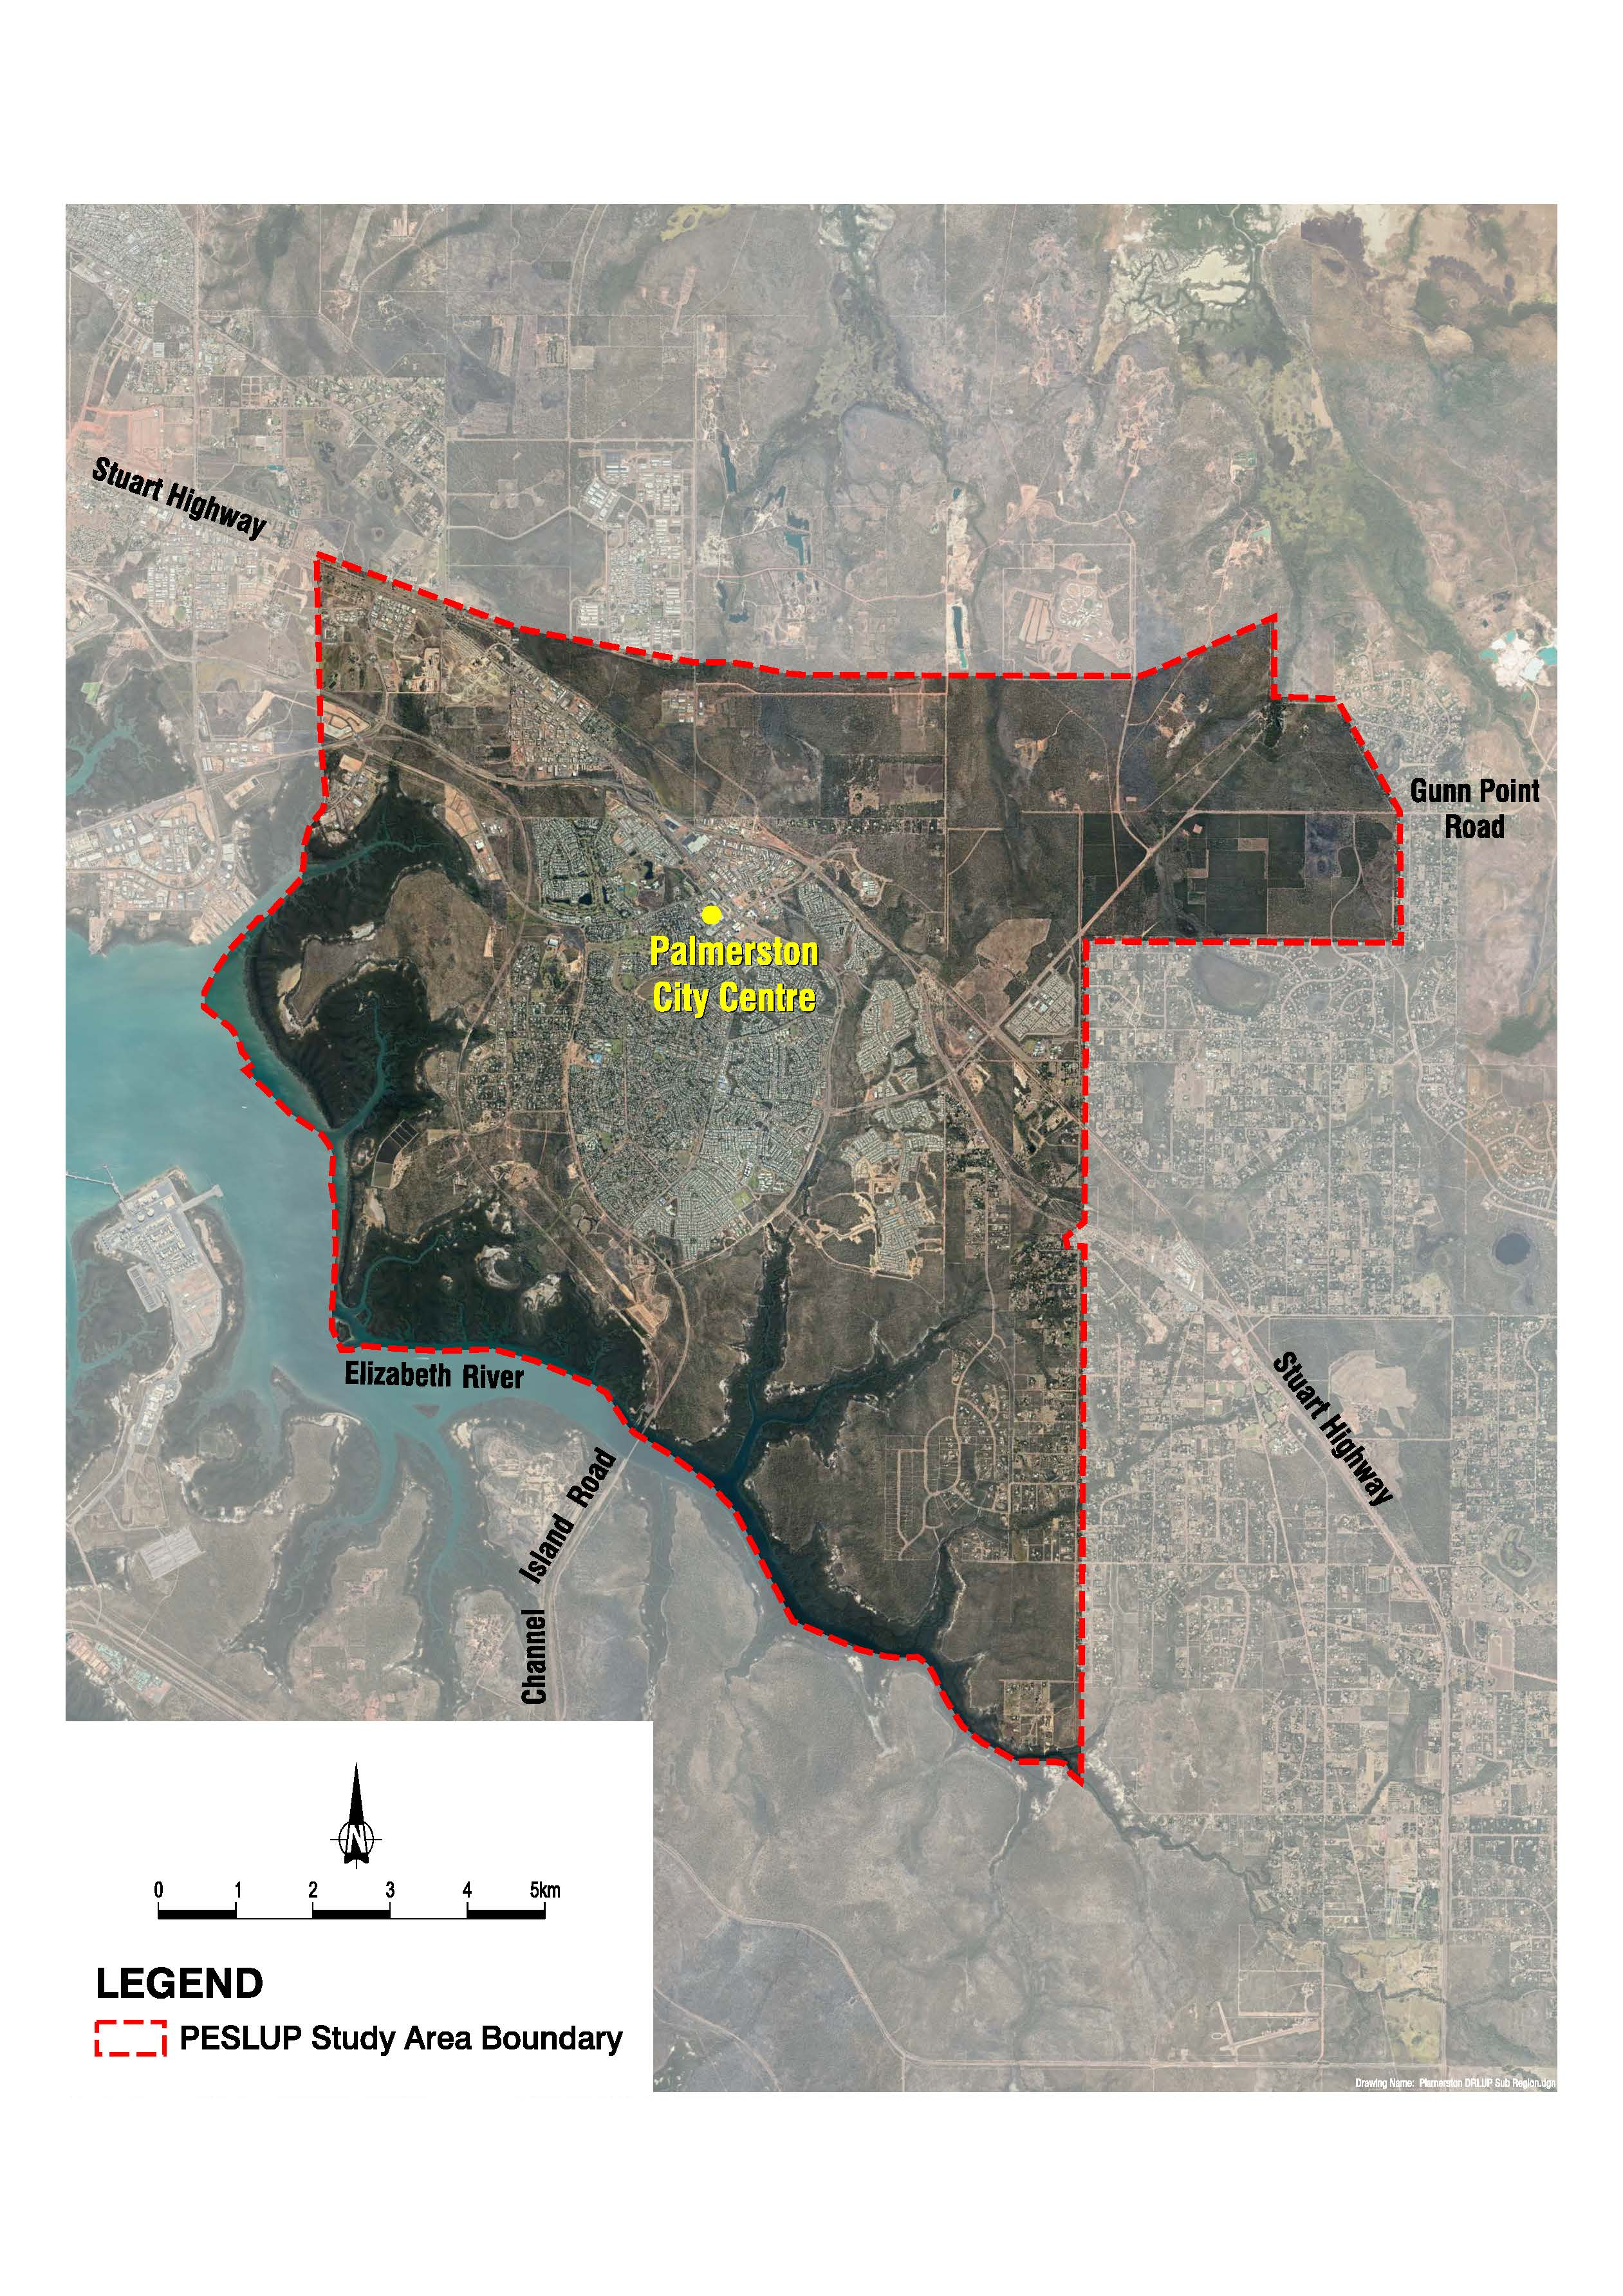 Map showing the study area boundary for the Palmerston Environs Subregional Land Use Plan project